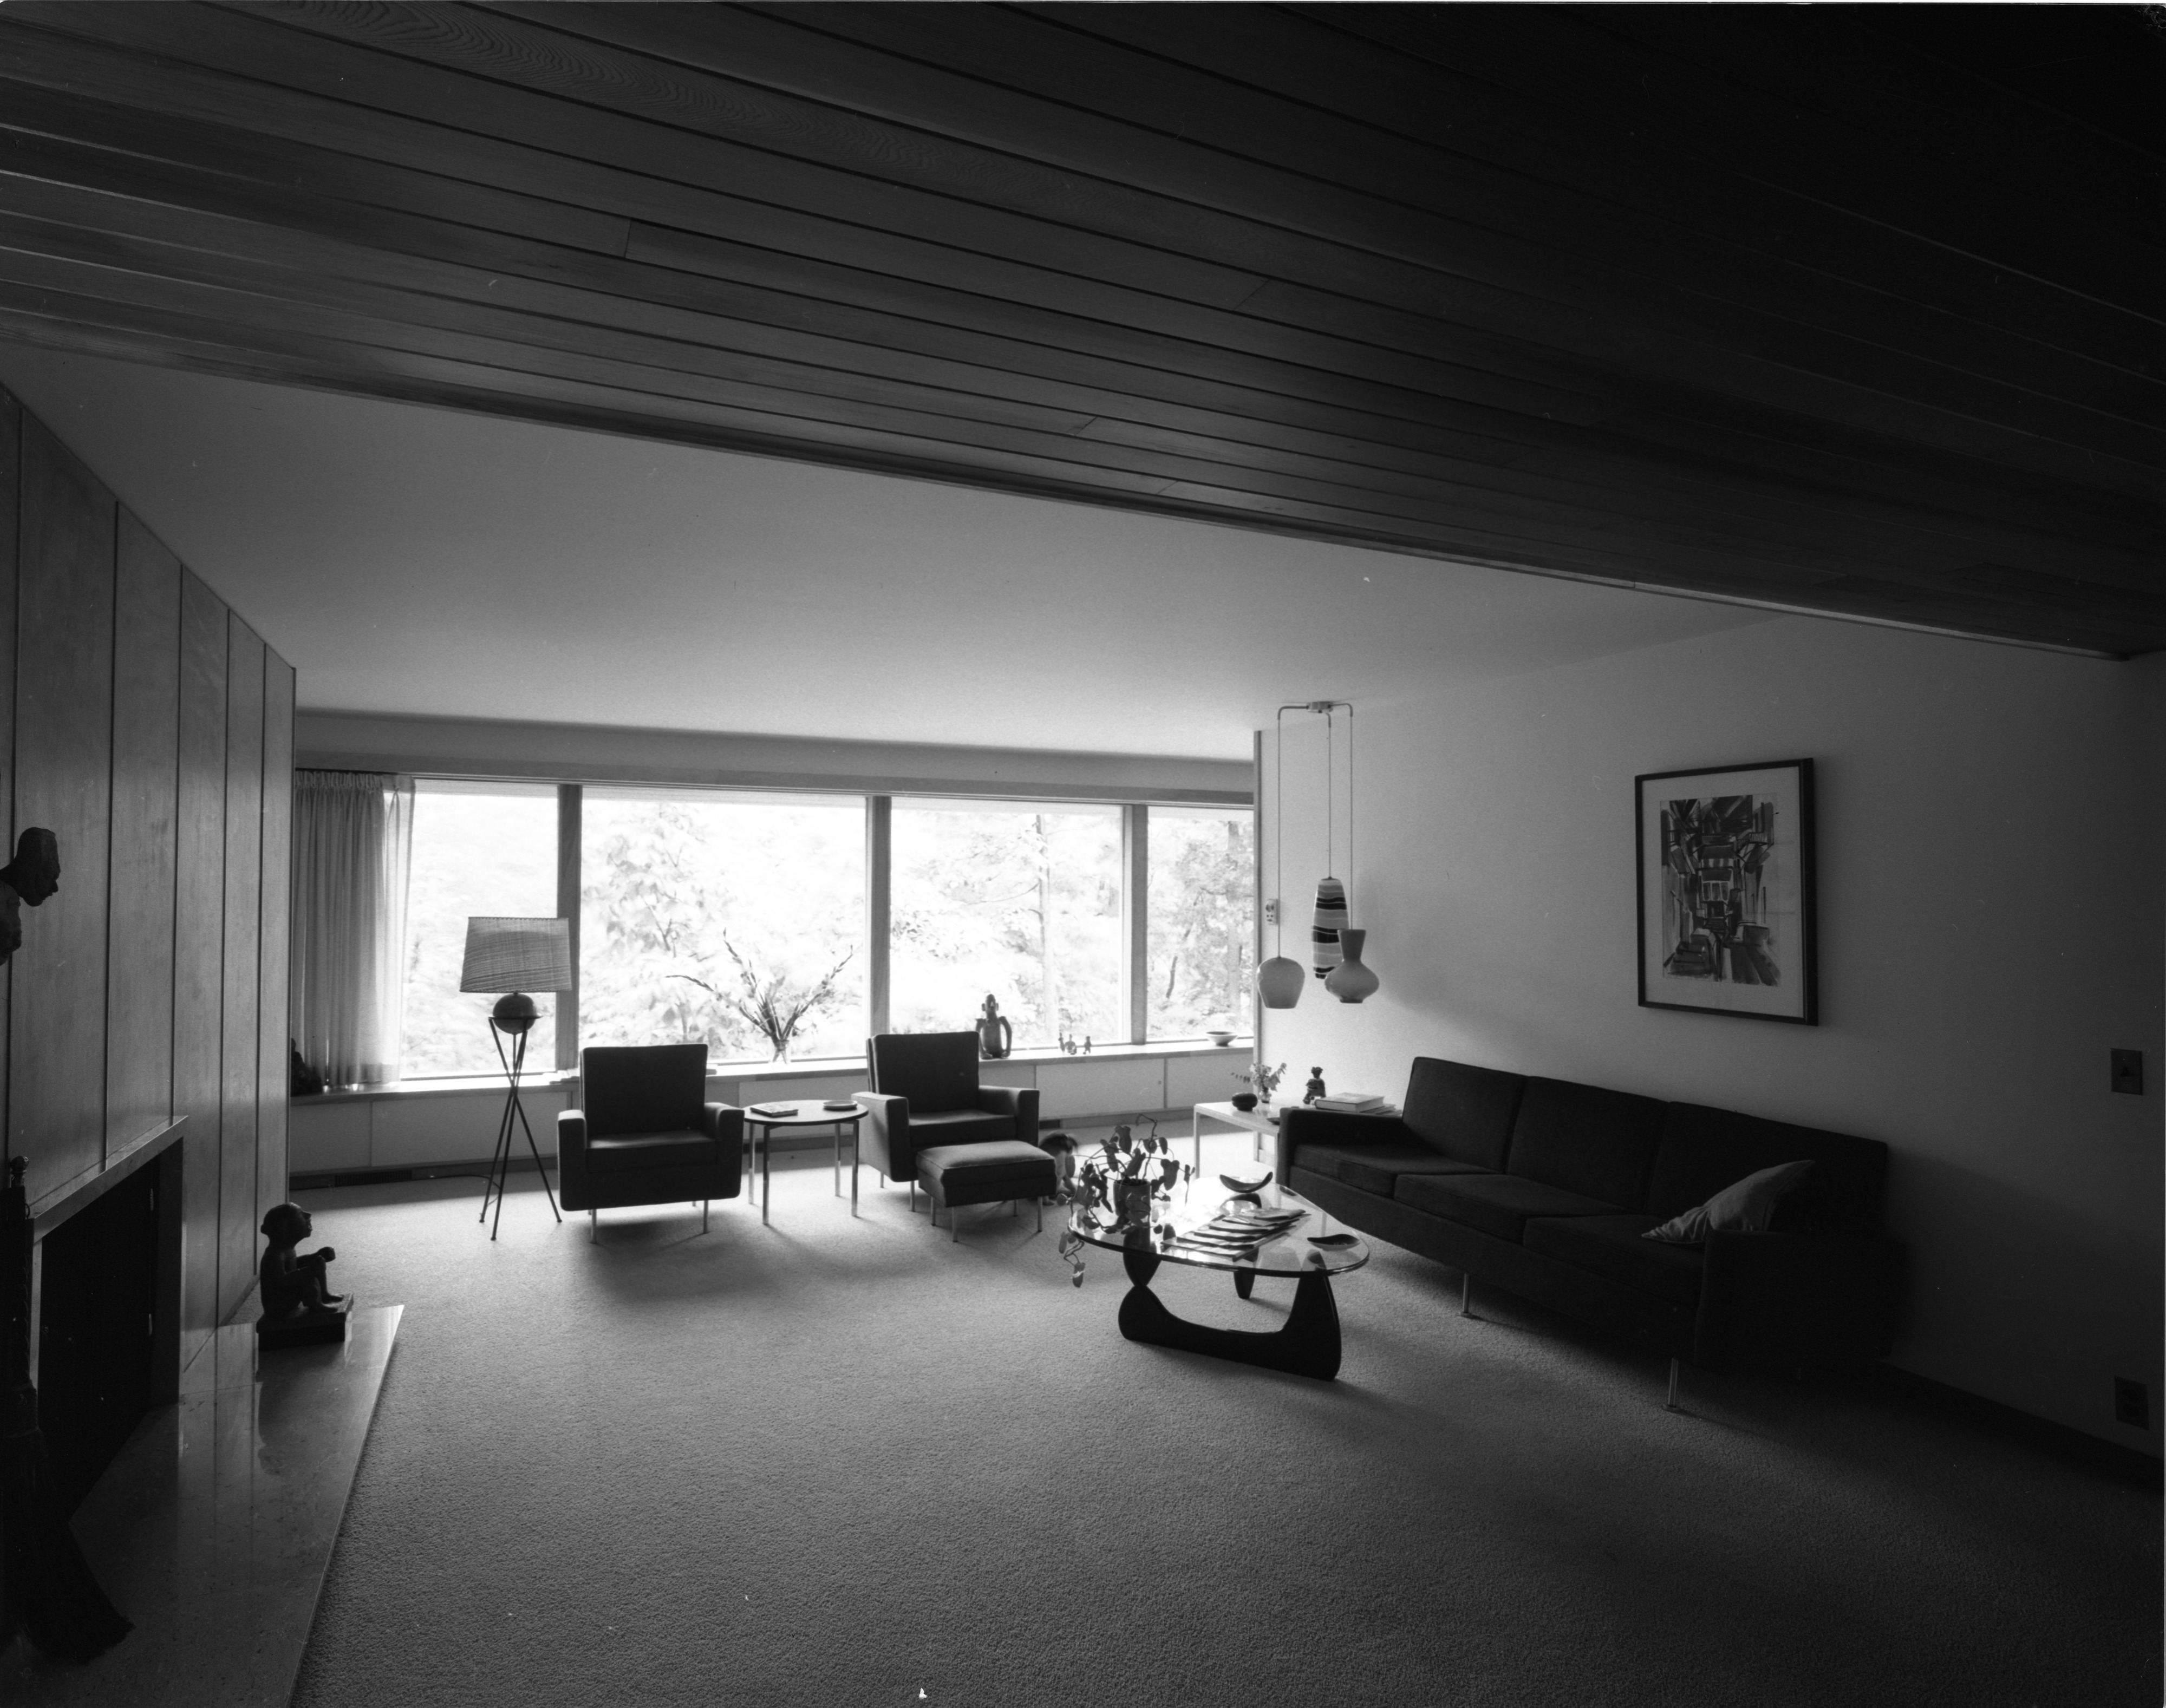 Living Room In the Pryor Mid-Century Modern Home In Barton Hills, July 1960 image